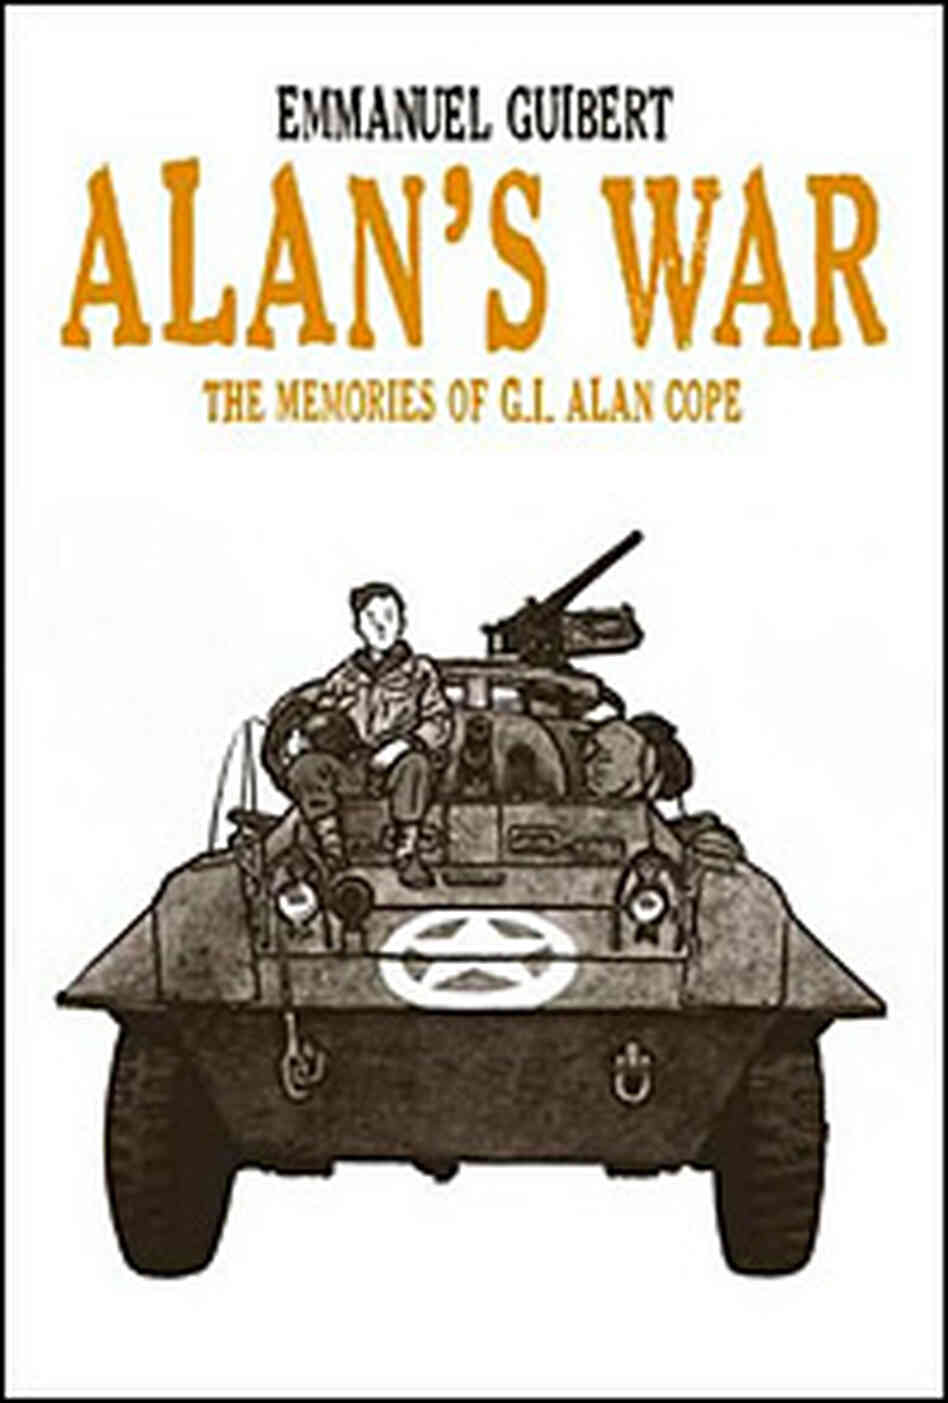 Emmanuel Guibert's 'Alan's War'